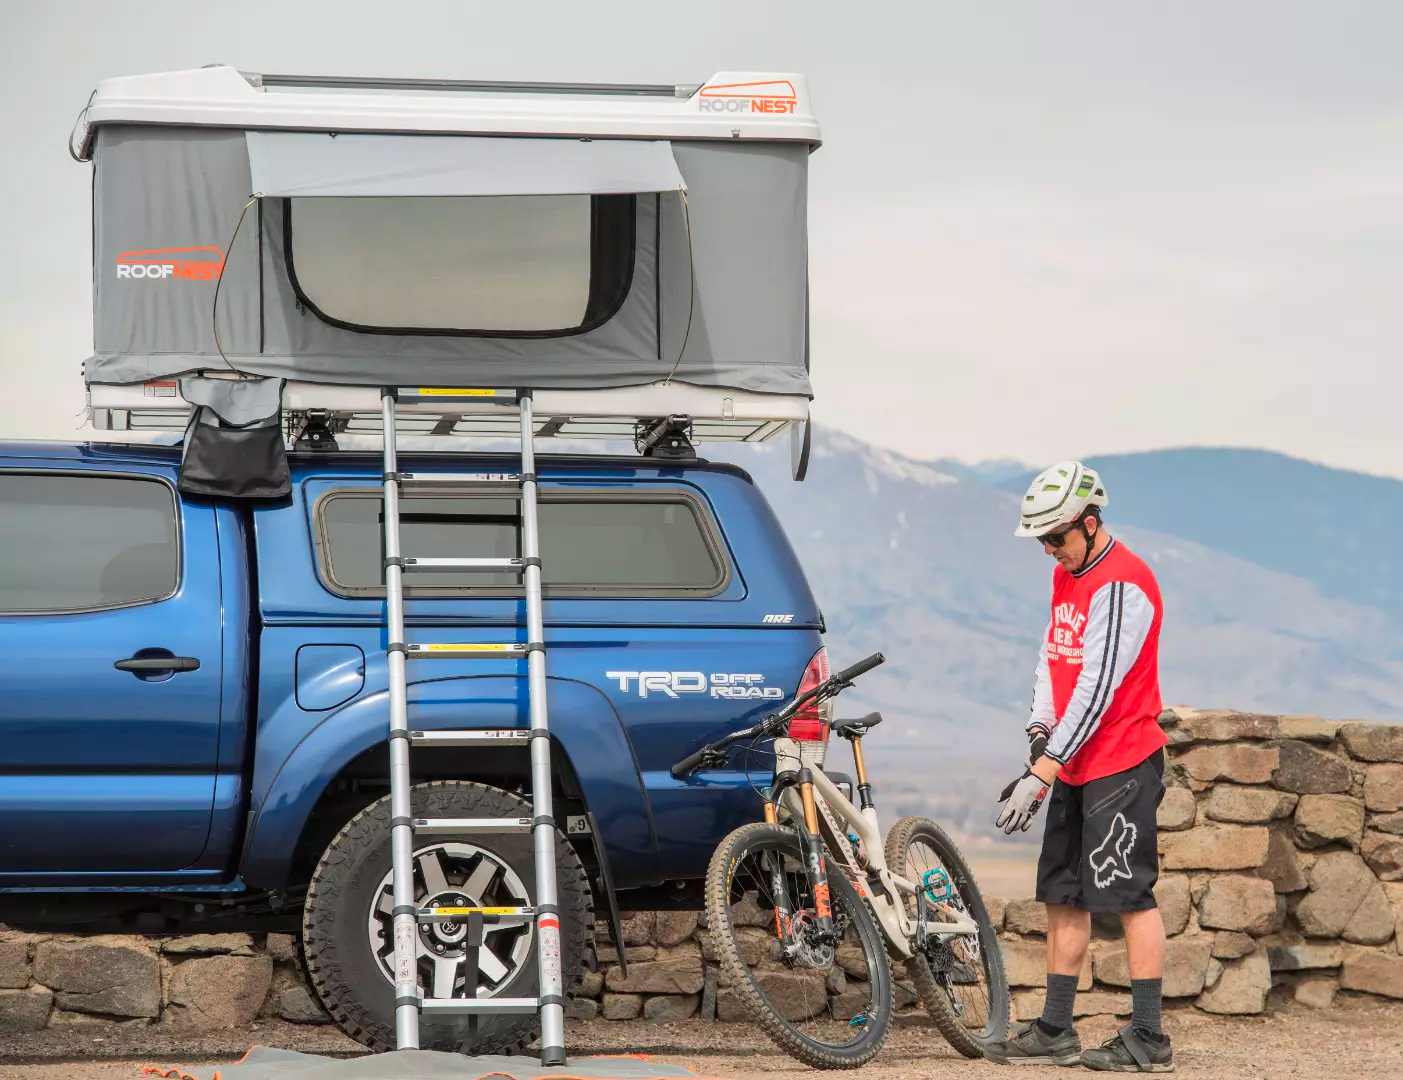 This Rooftop Tent Makes It Easier To Bring Your Toys at werd.com